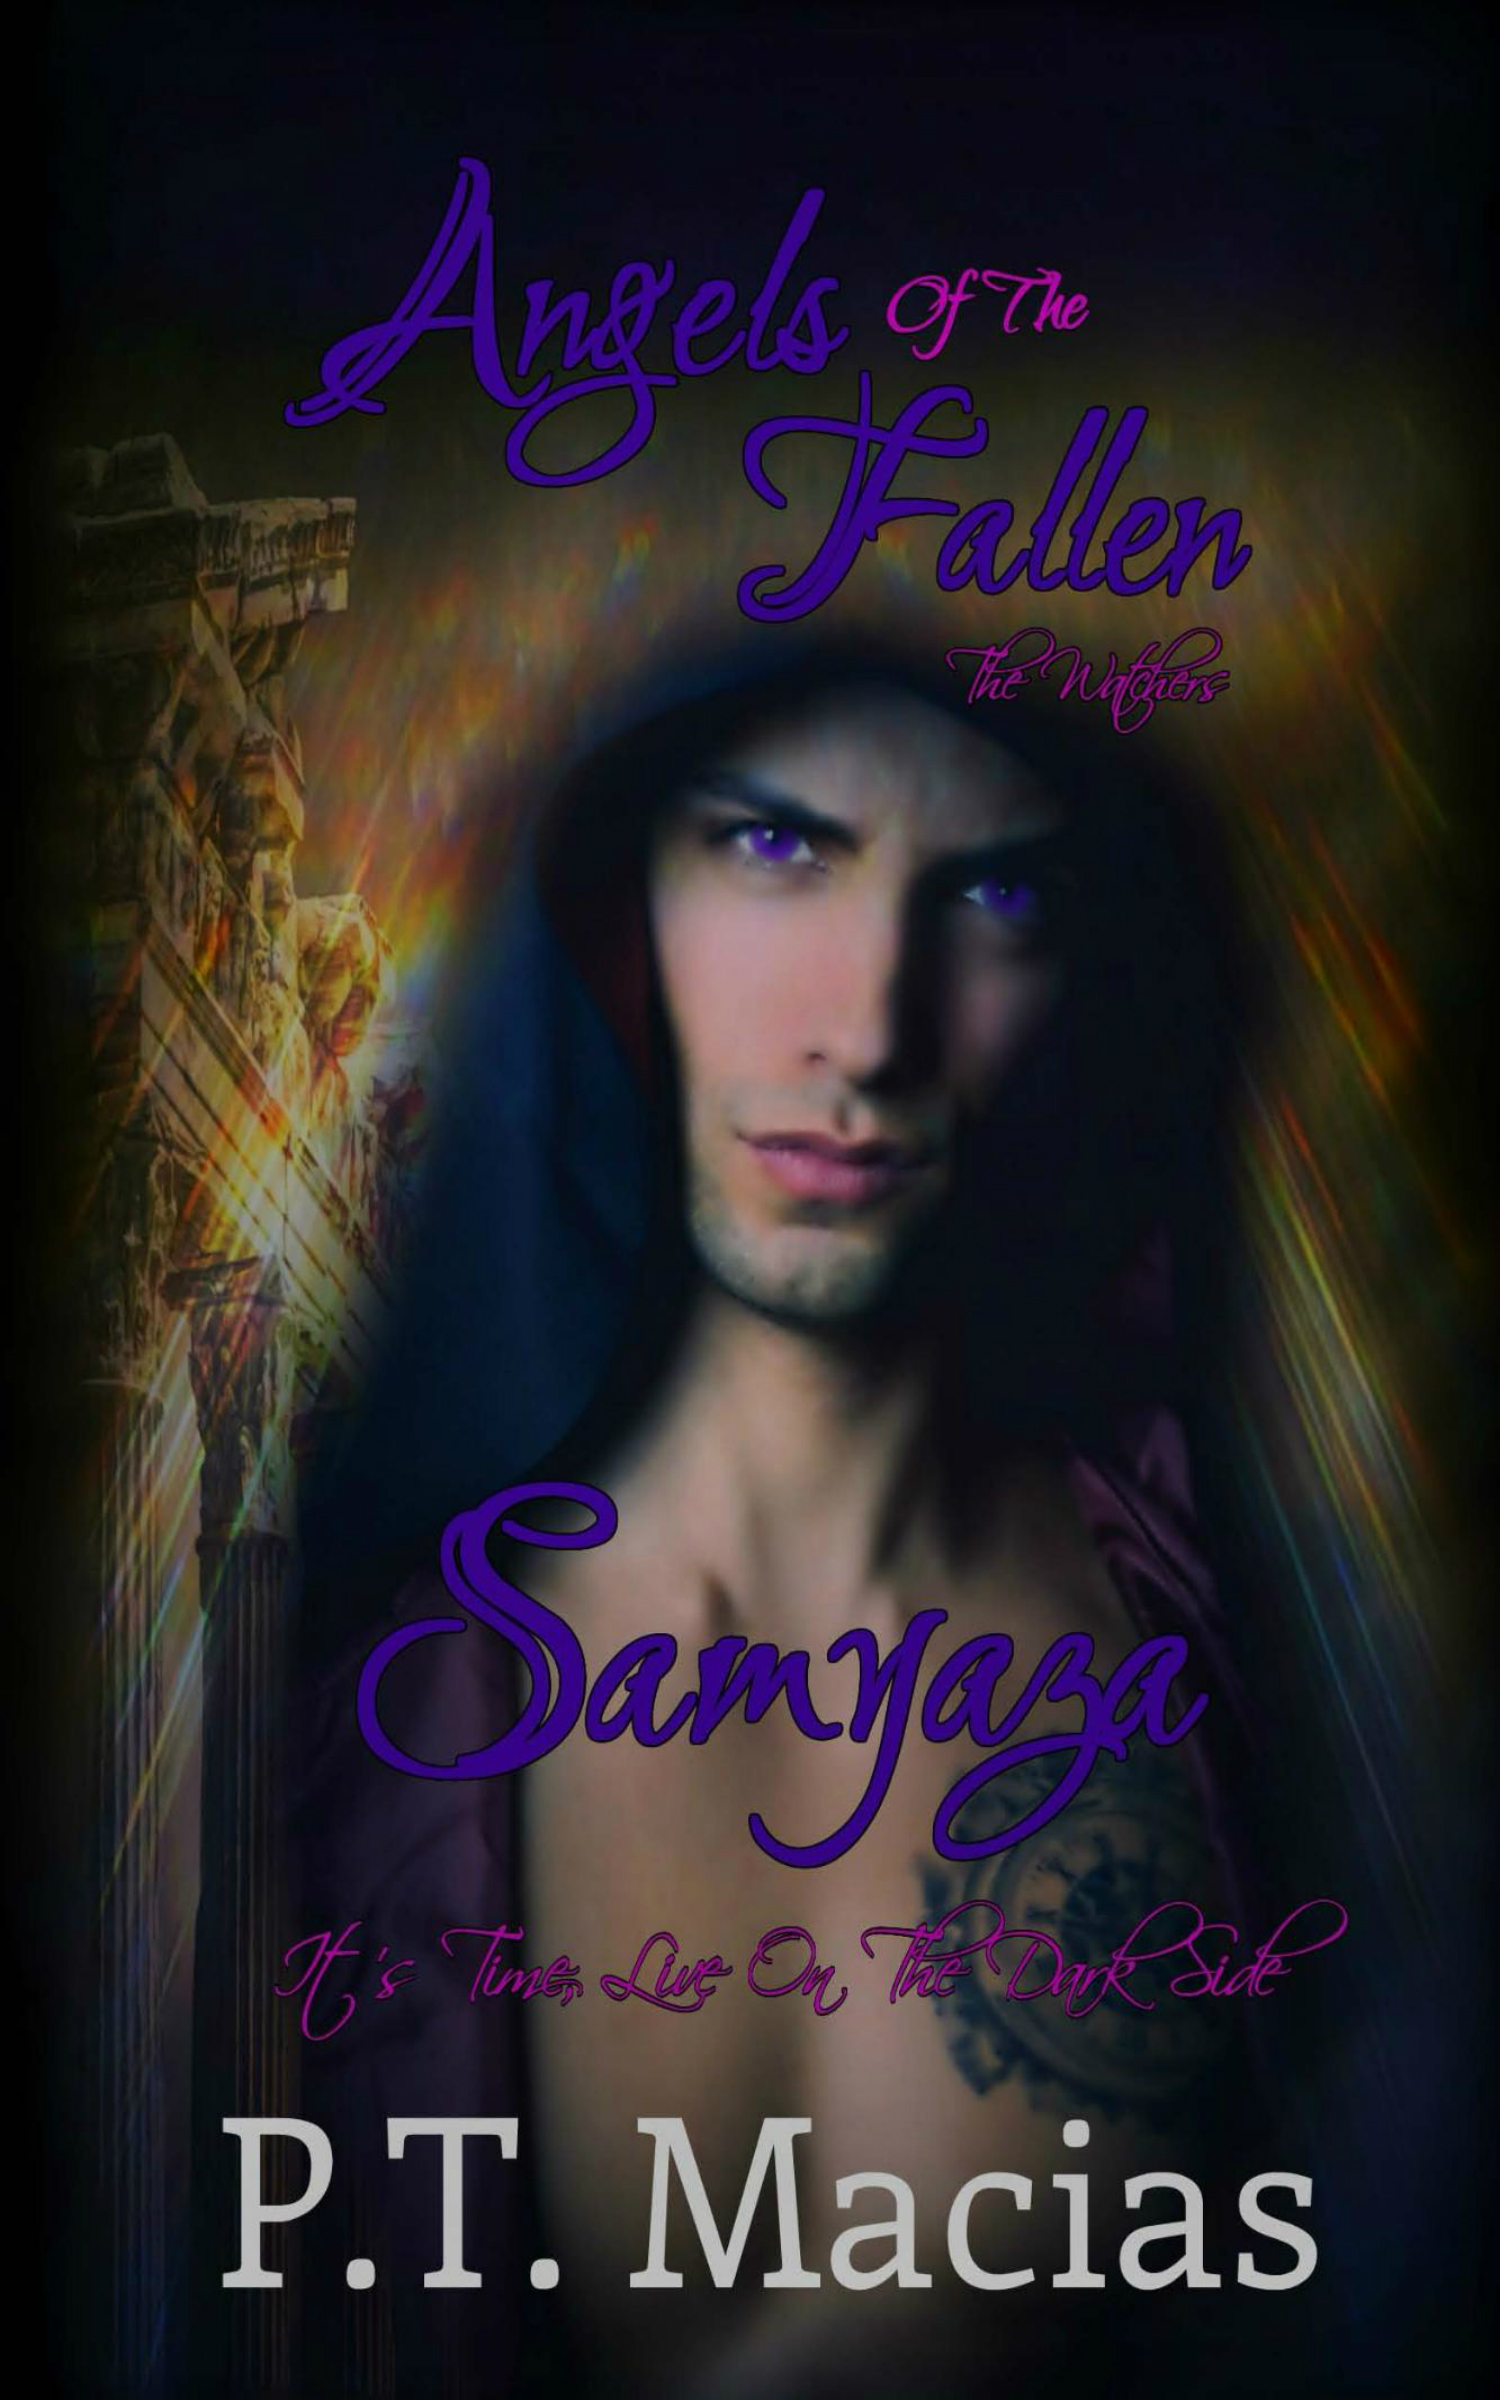 Angels Of The Fallen Samyaza Its Time Live On Dark Side Watchers Book 1